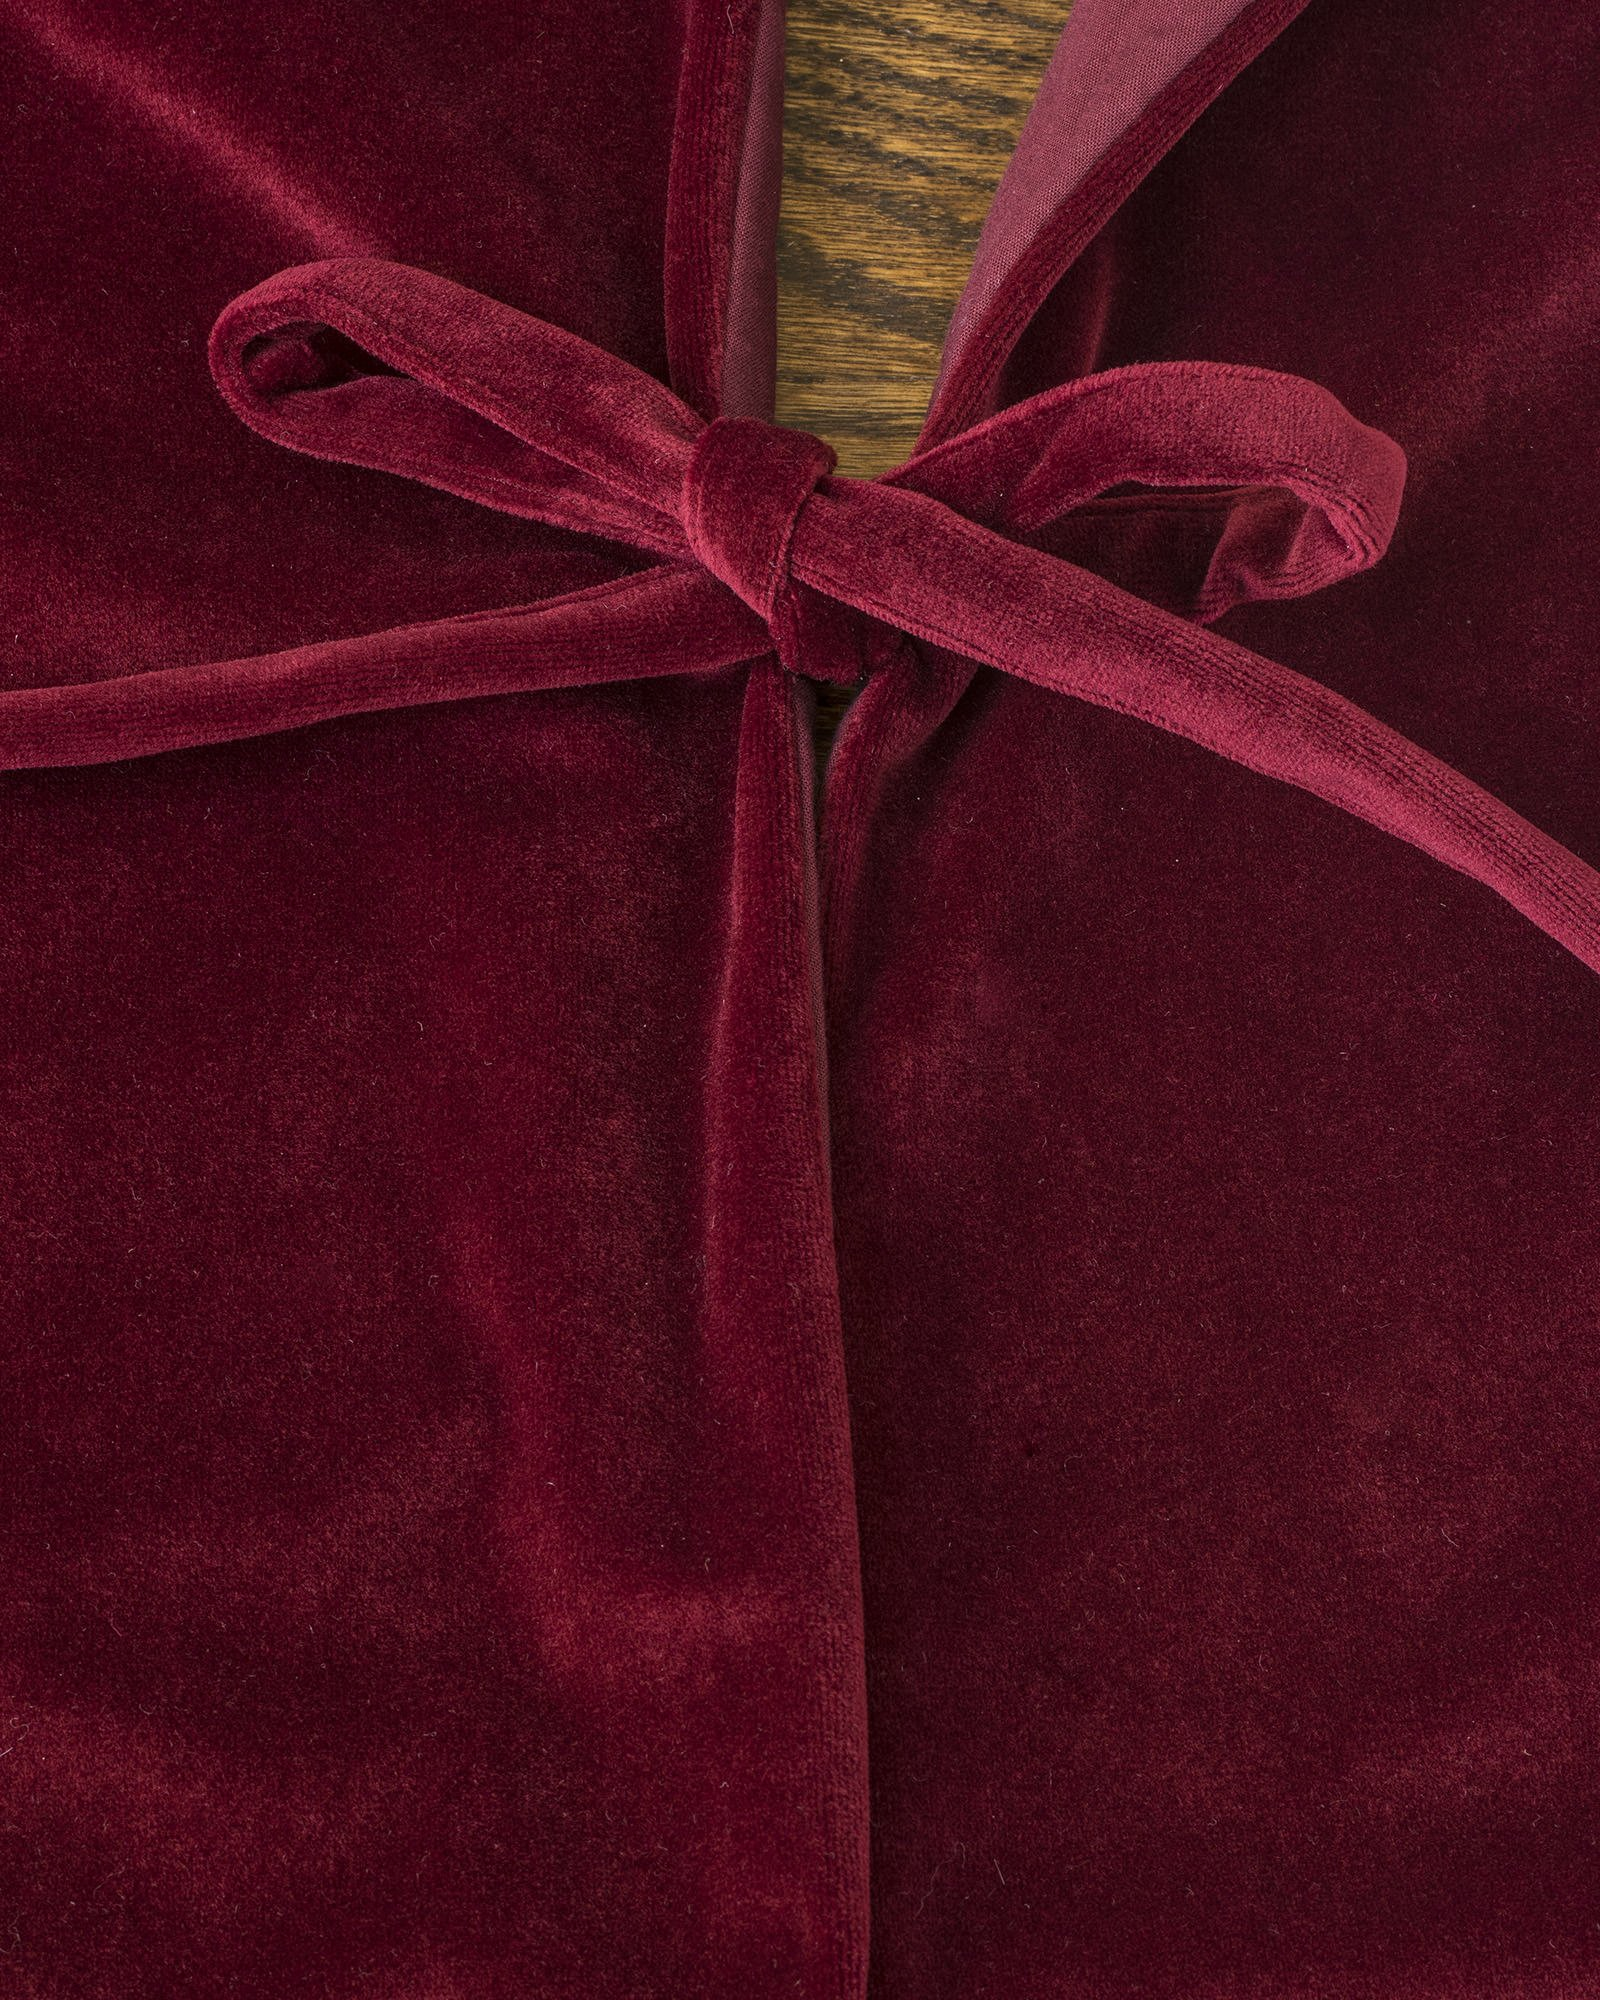 Balsam Hill Luxe Embroidered Velvet Tree Skirt, 60 inches, Wine by Balsam Hill (Image #4)